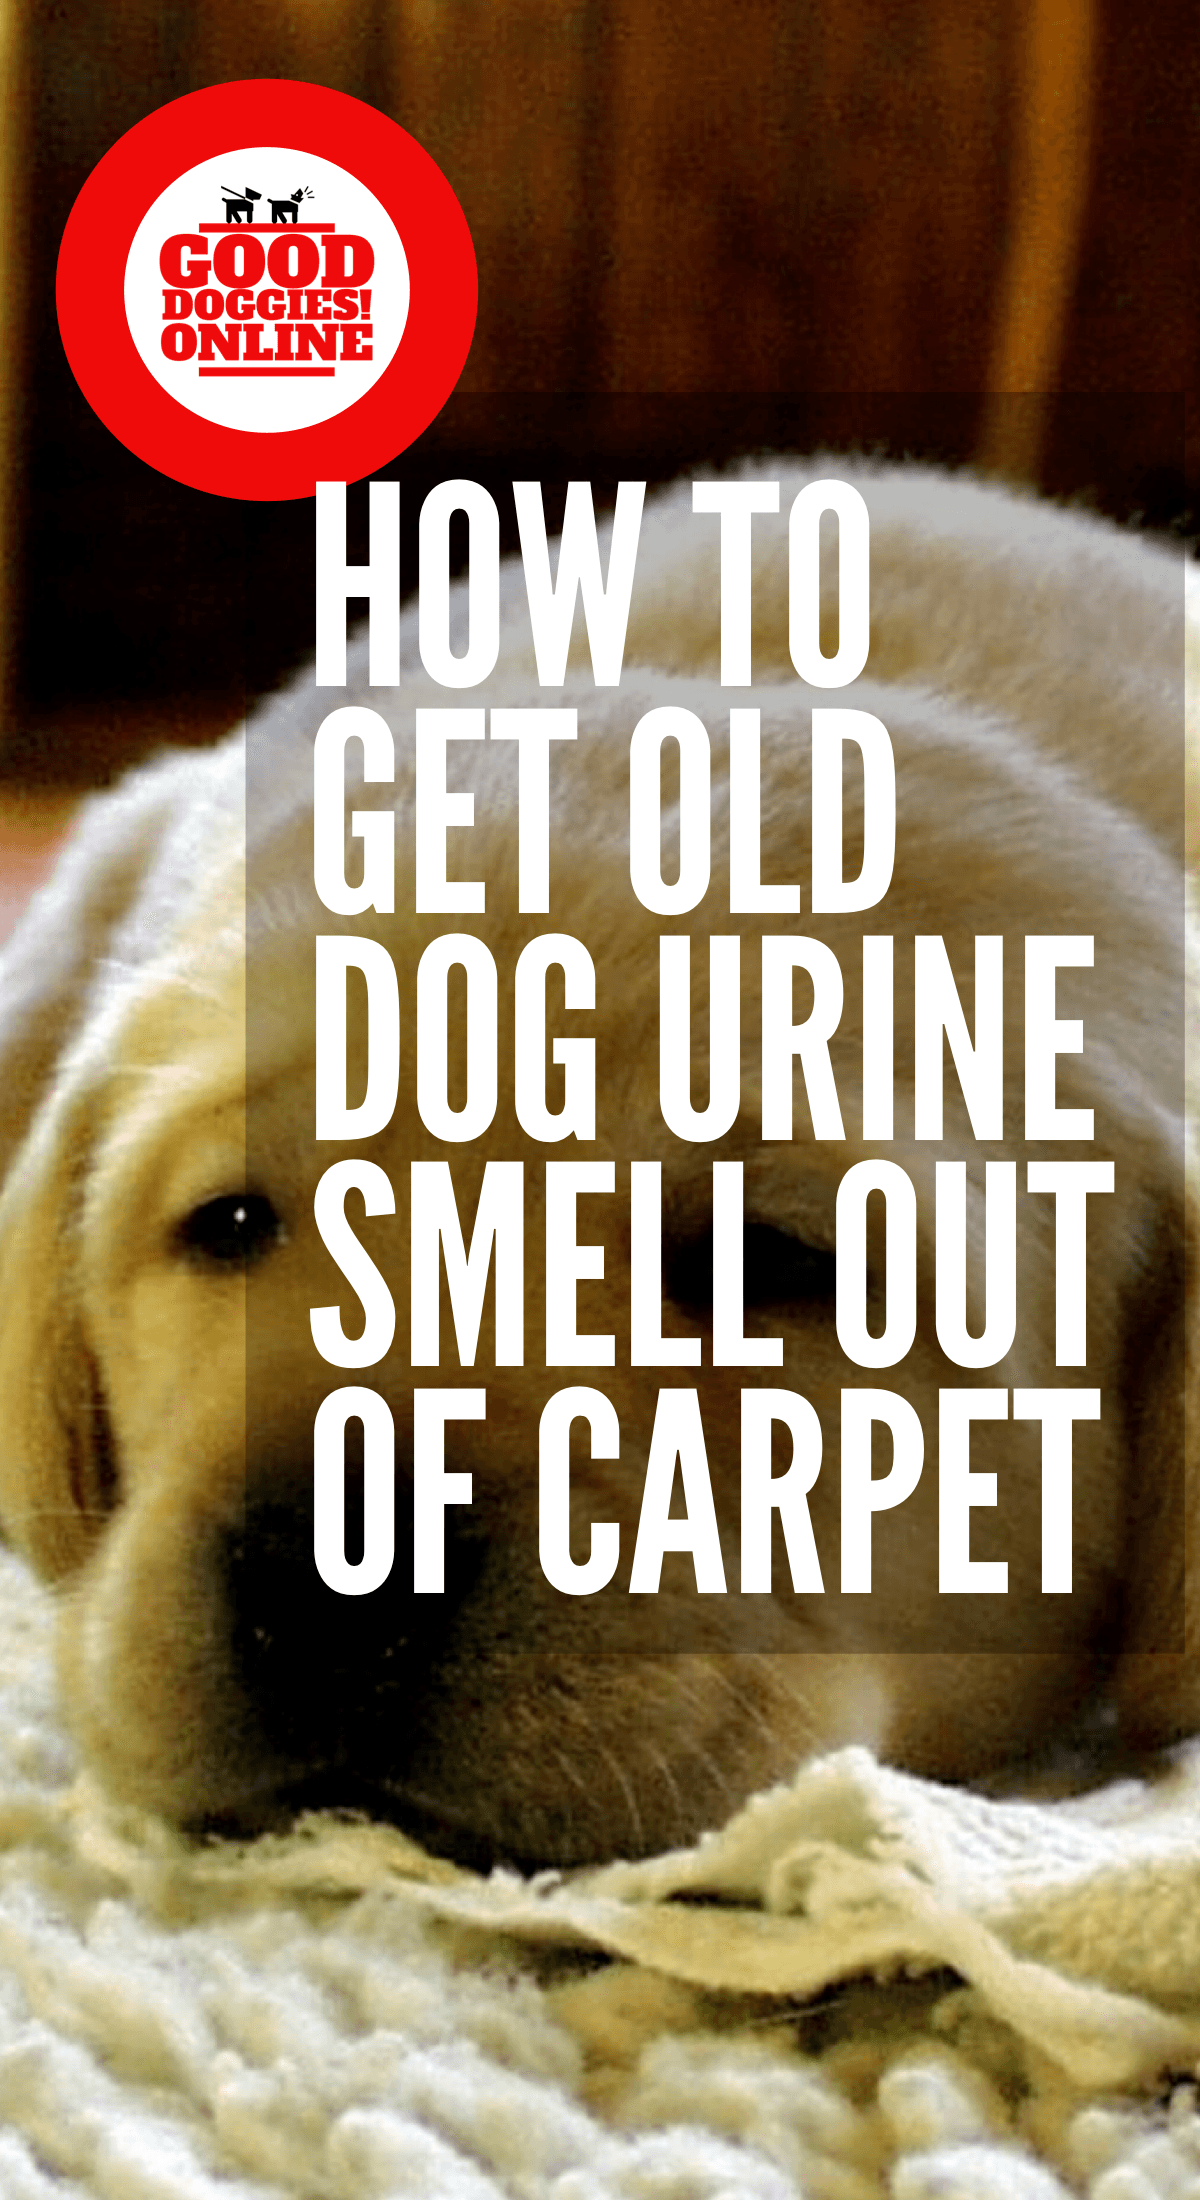 How To Get Old Dog Urine Smell Out Of Carpet Cleaning